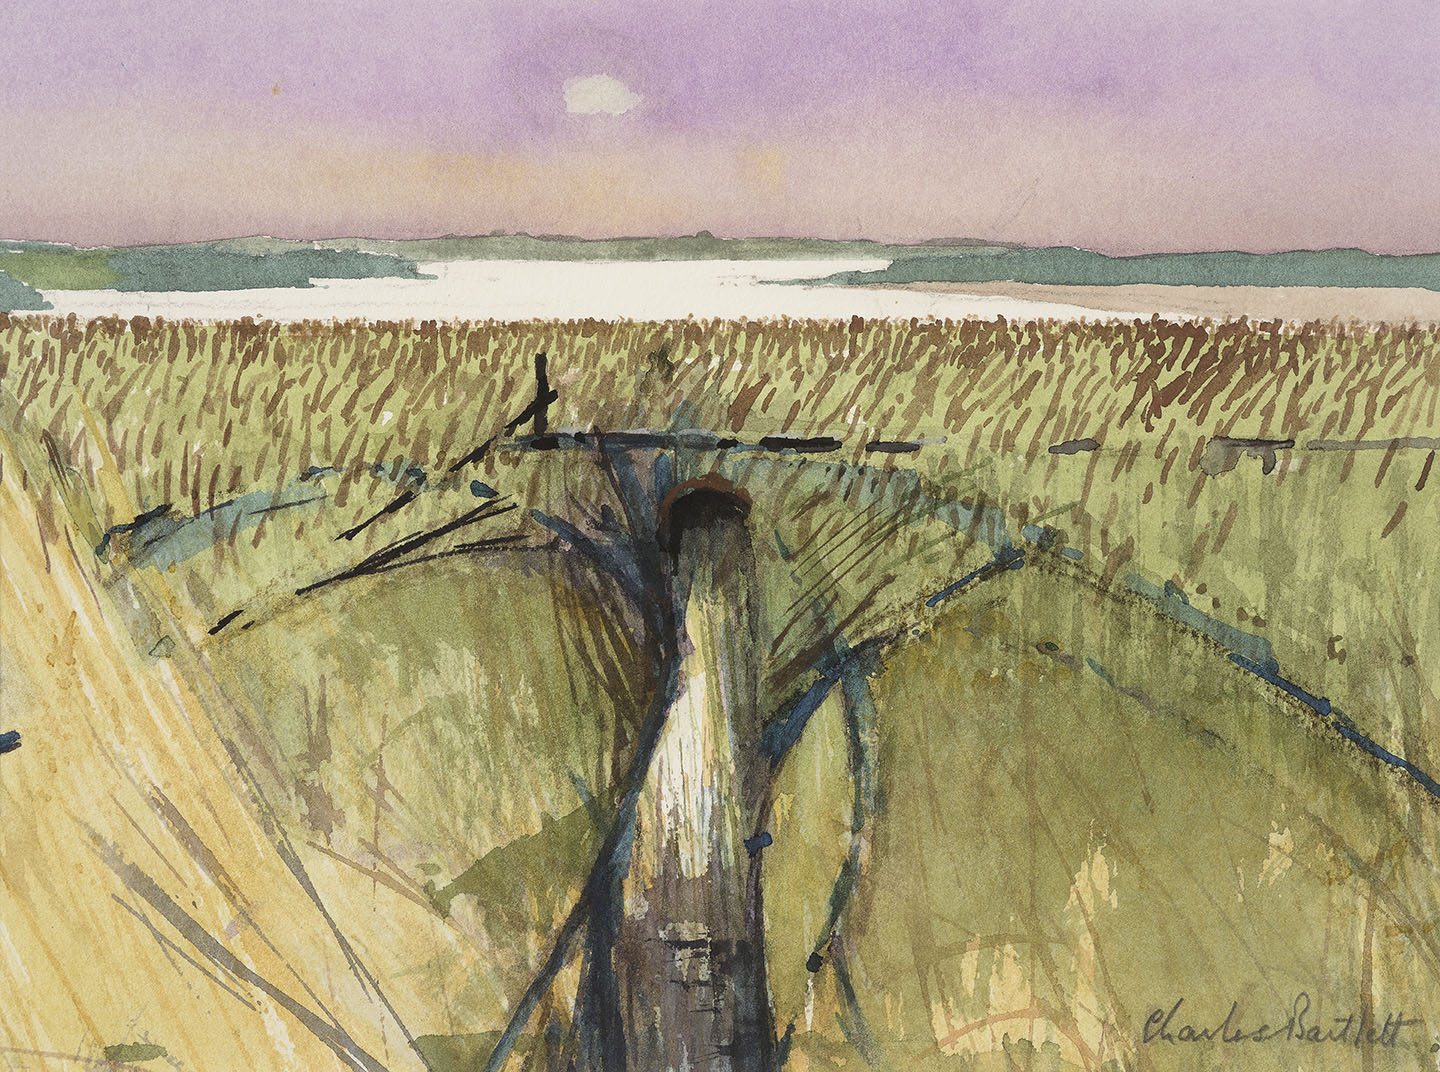 Charles Bartlett RWS, RE, ARCA (1921-2014)    Suffolk Reeds,  2007, Watercolour on paper, 10 x 13 ½ in, Signed  [CAS 63] Acquired in 2009